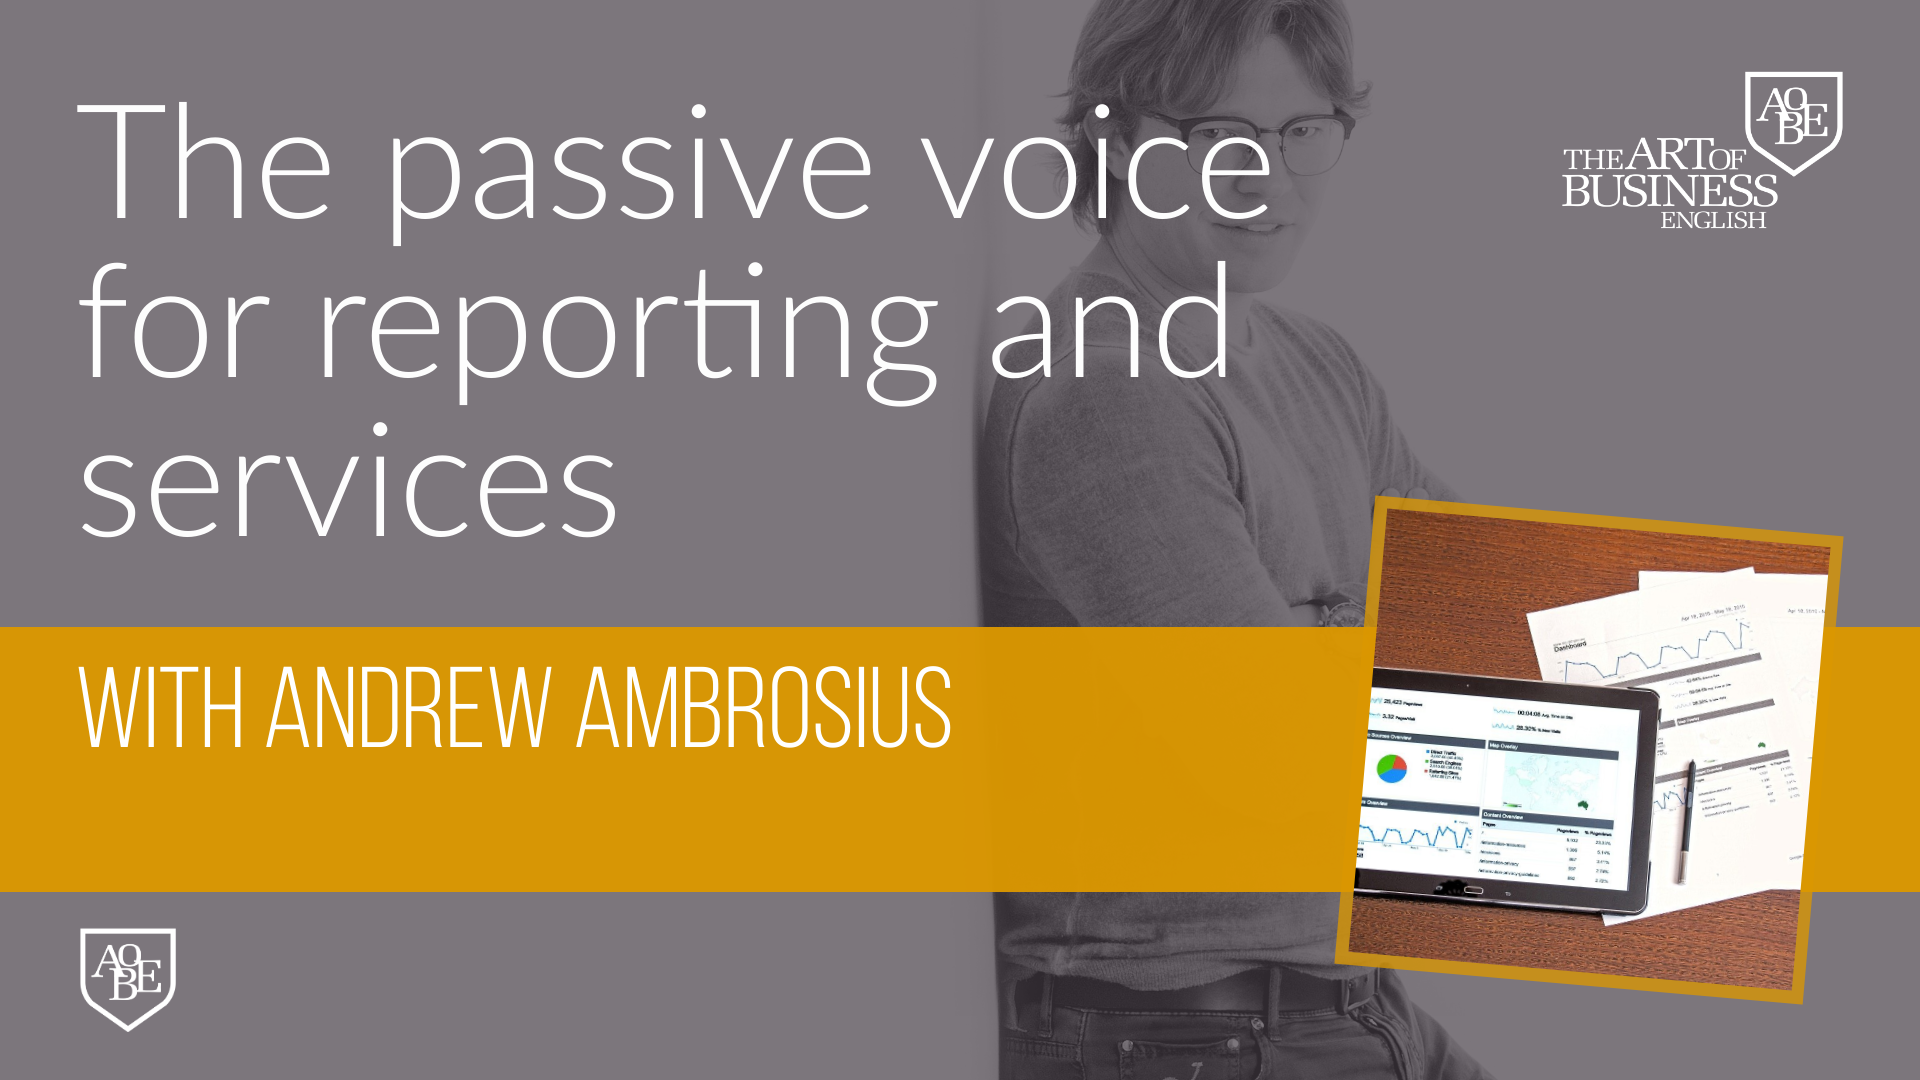 The Passive Voice for reporting and services